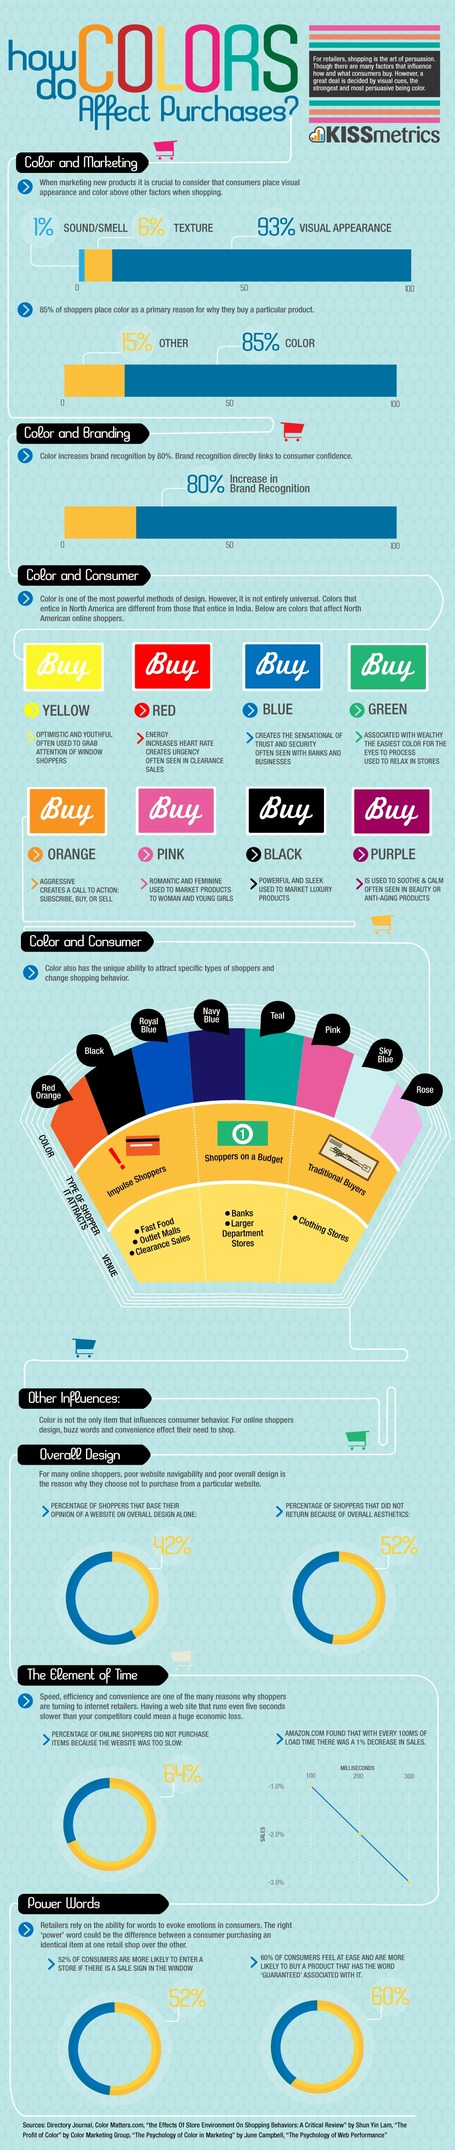 #DATA - How Colors Influence Marketing and Sales [Infographic] - Kissmetrics | Data #TBD | Scoop.it